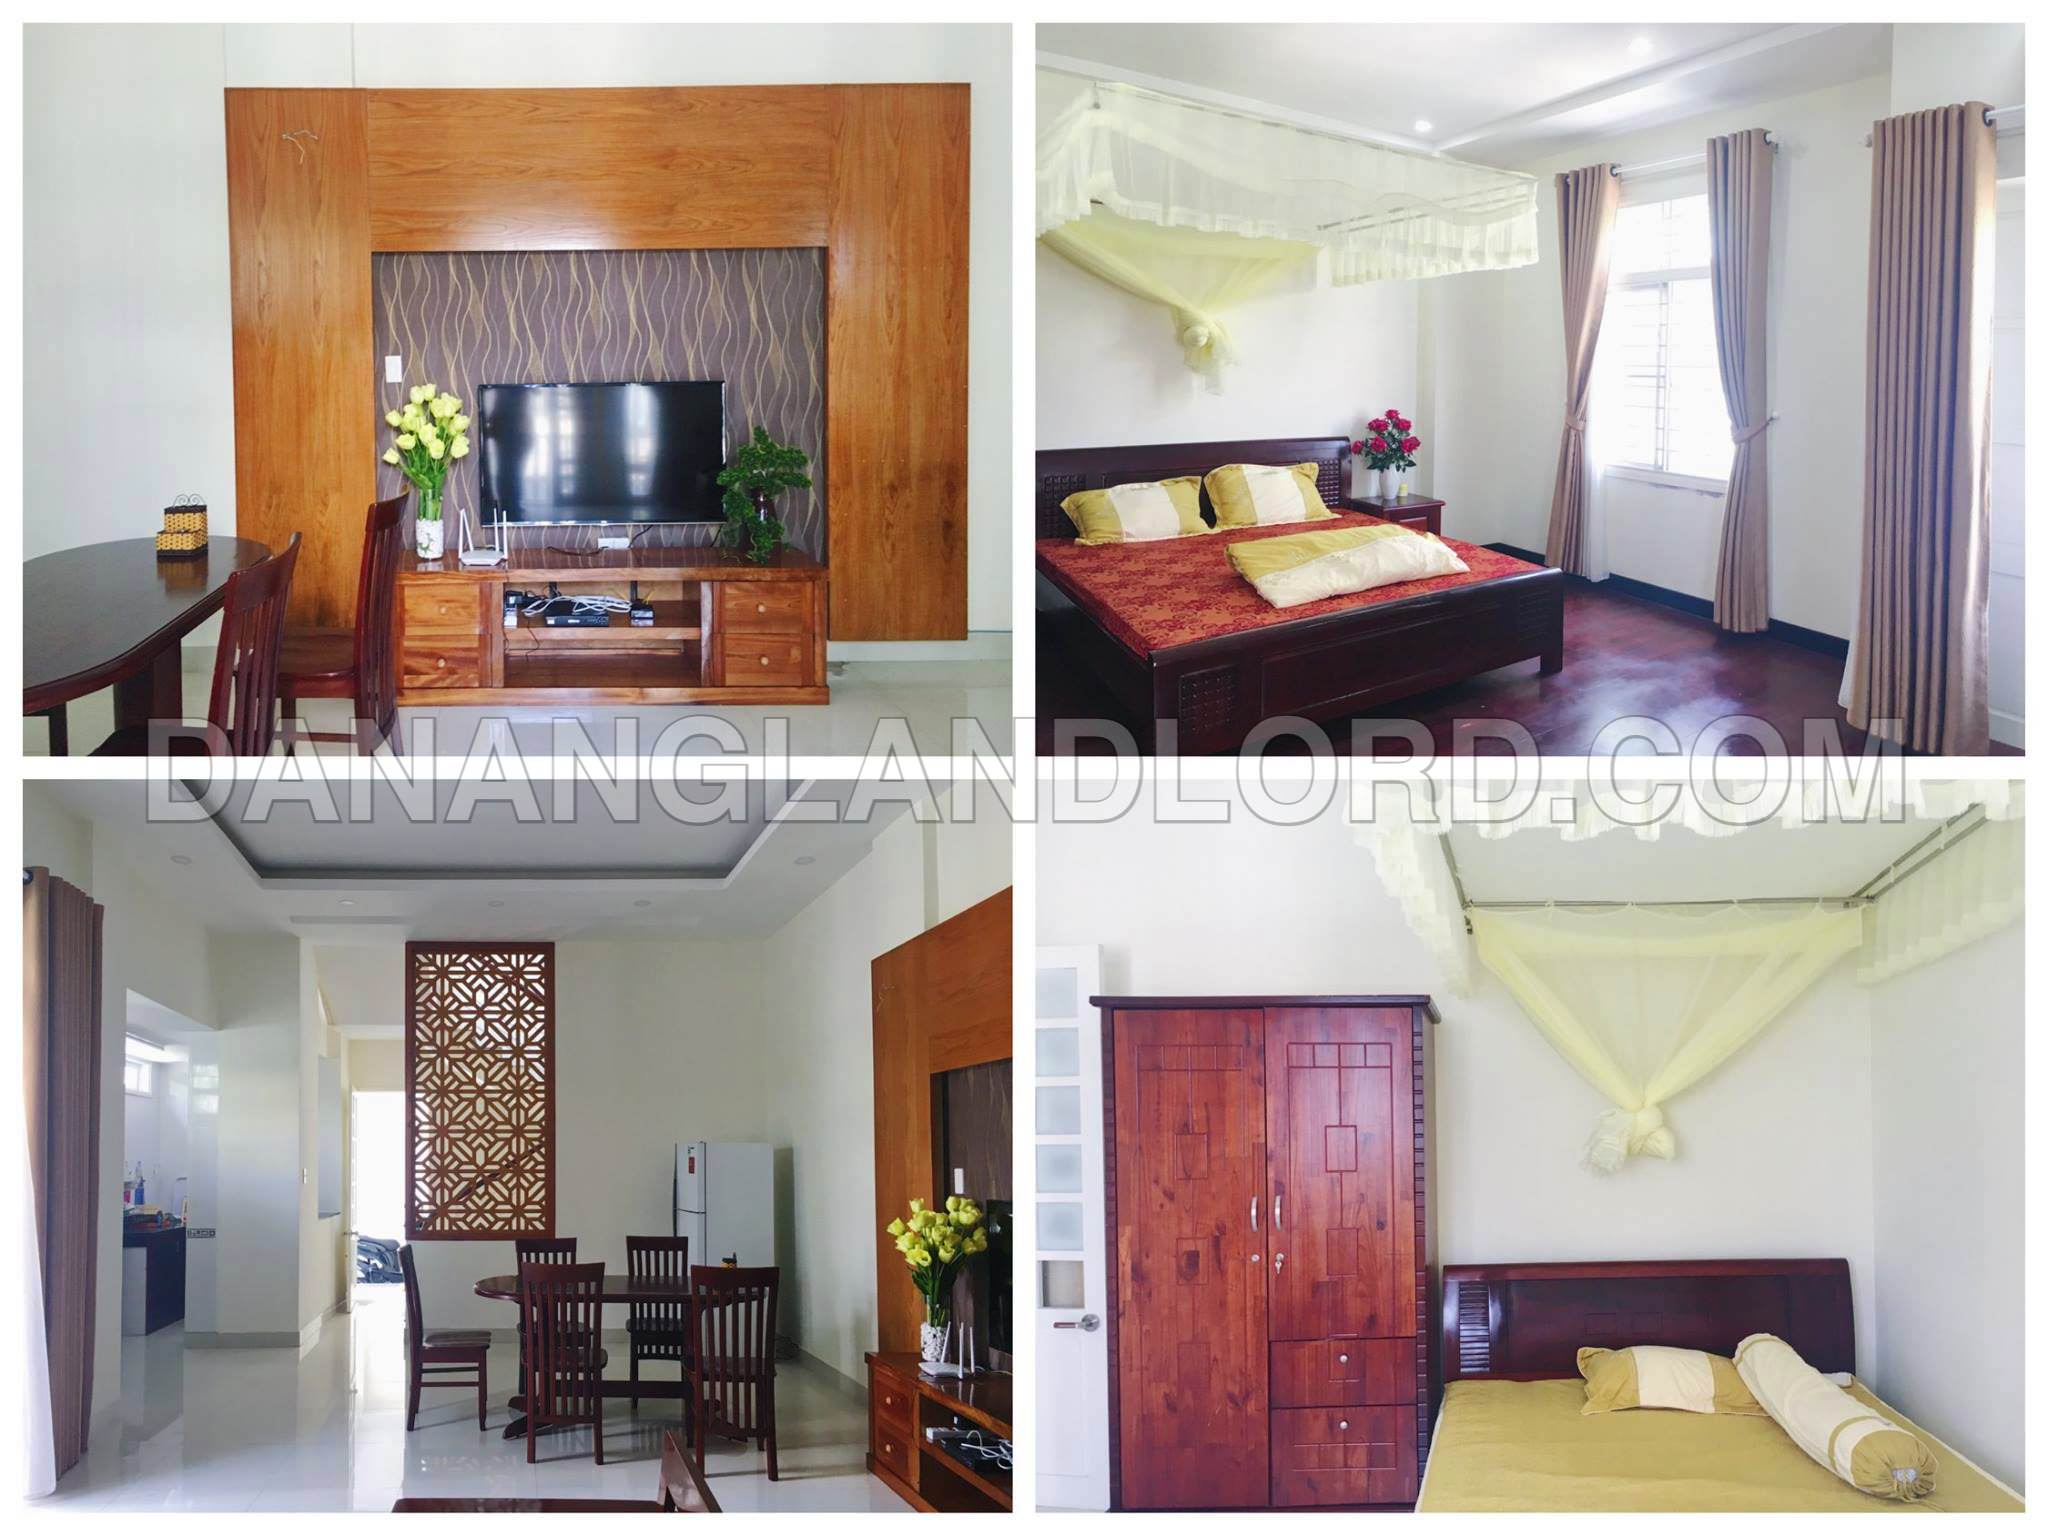 4 bedroom house in Pham Van Dong area – WVS8